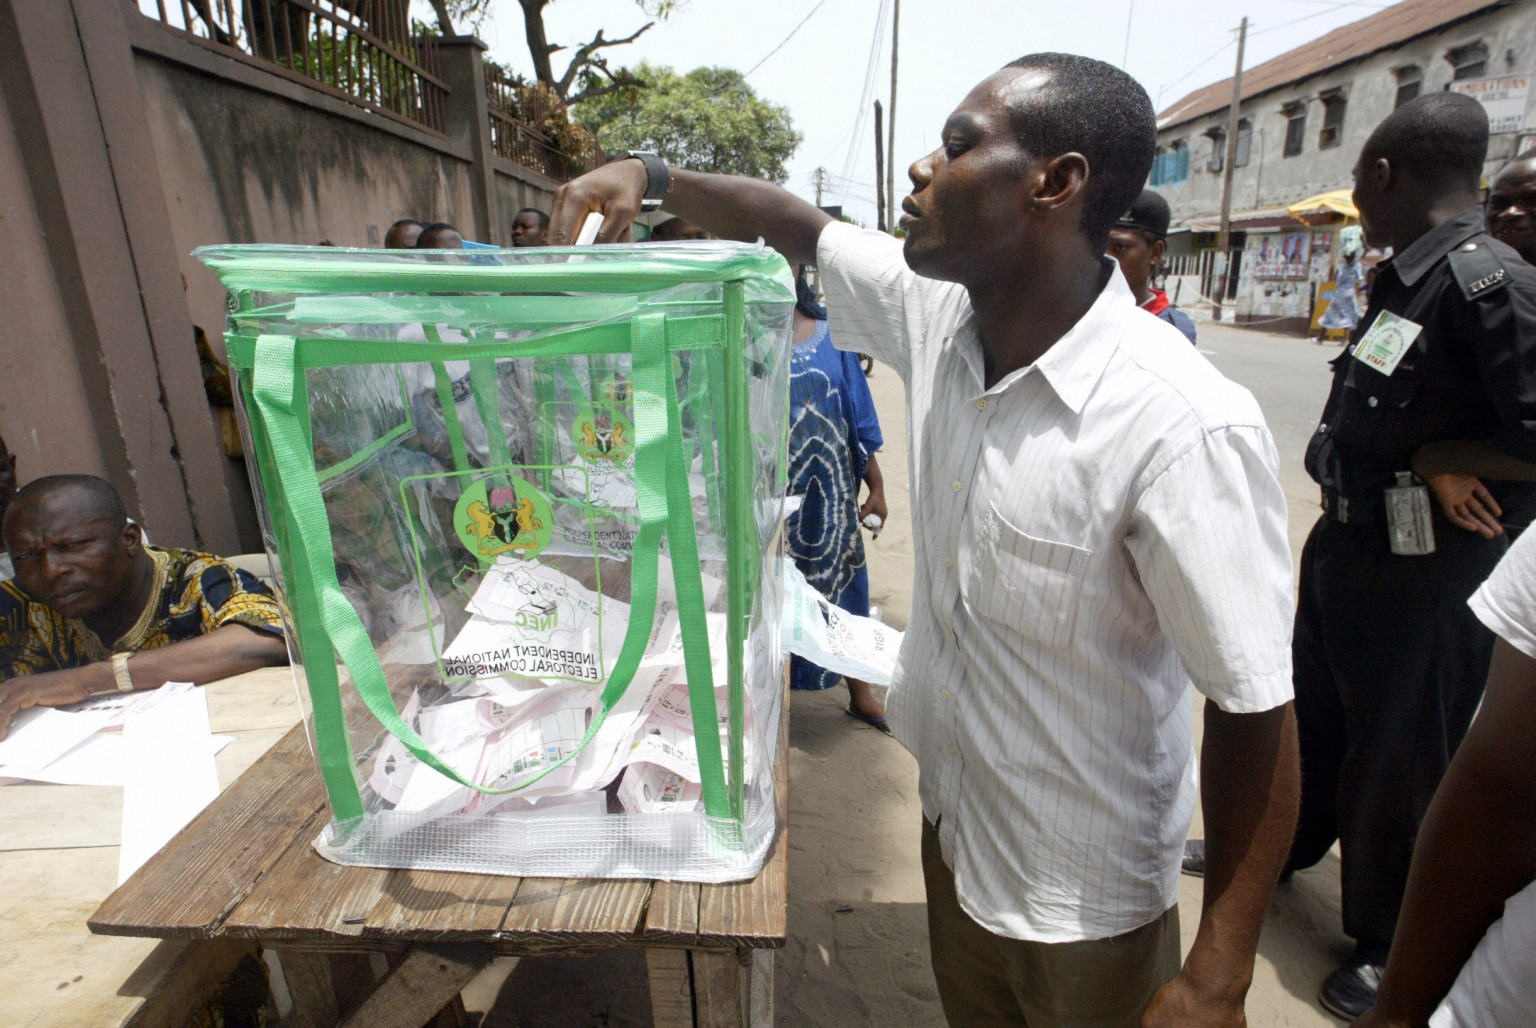 An electorate casting his vote